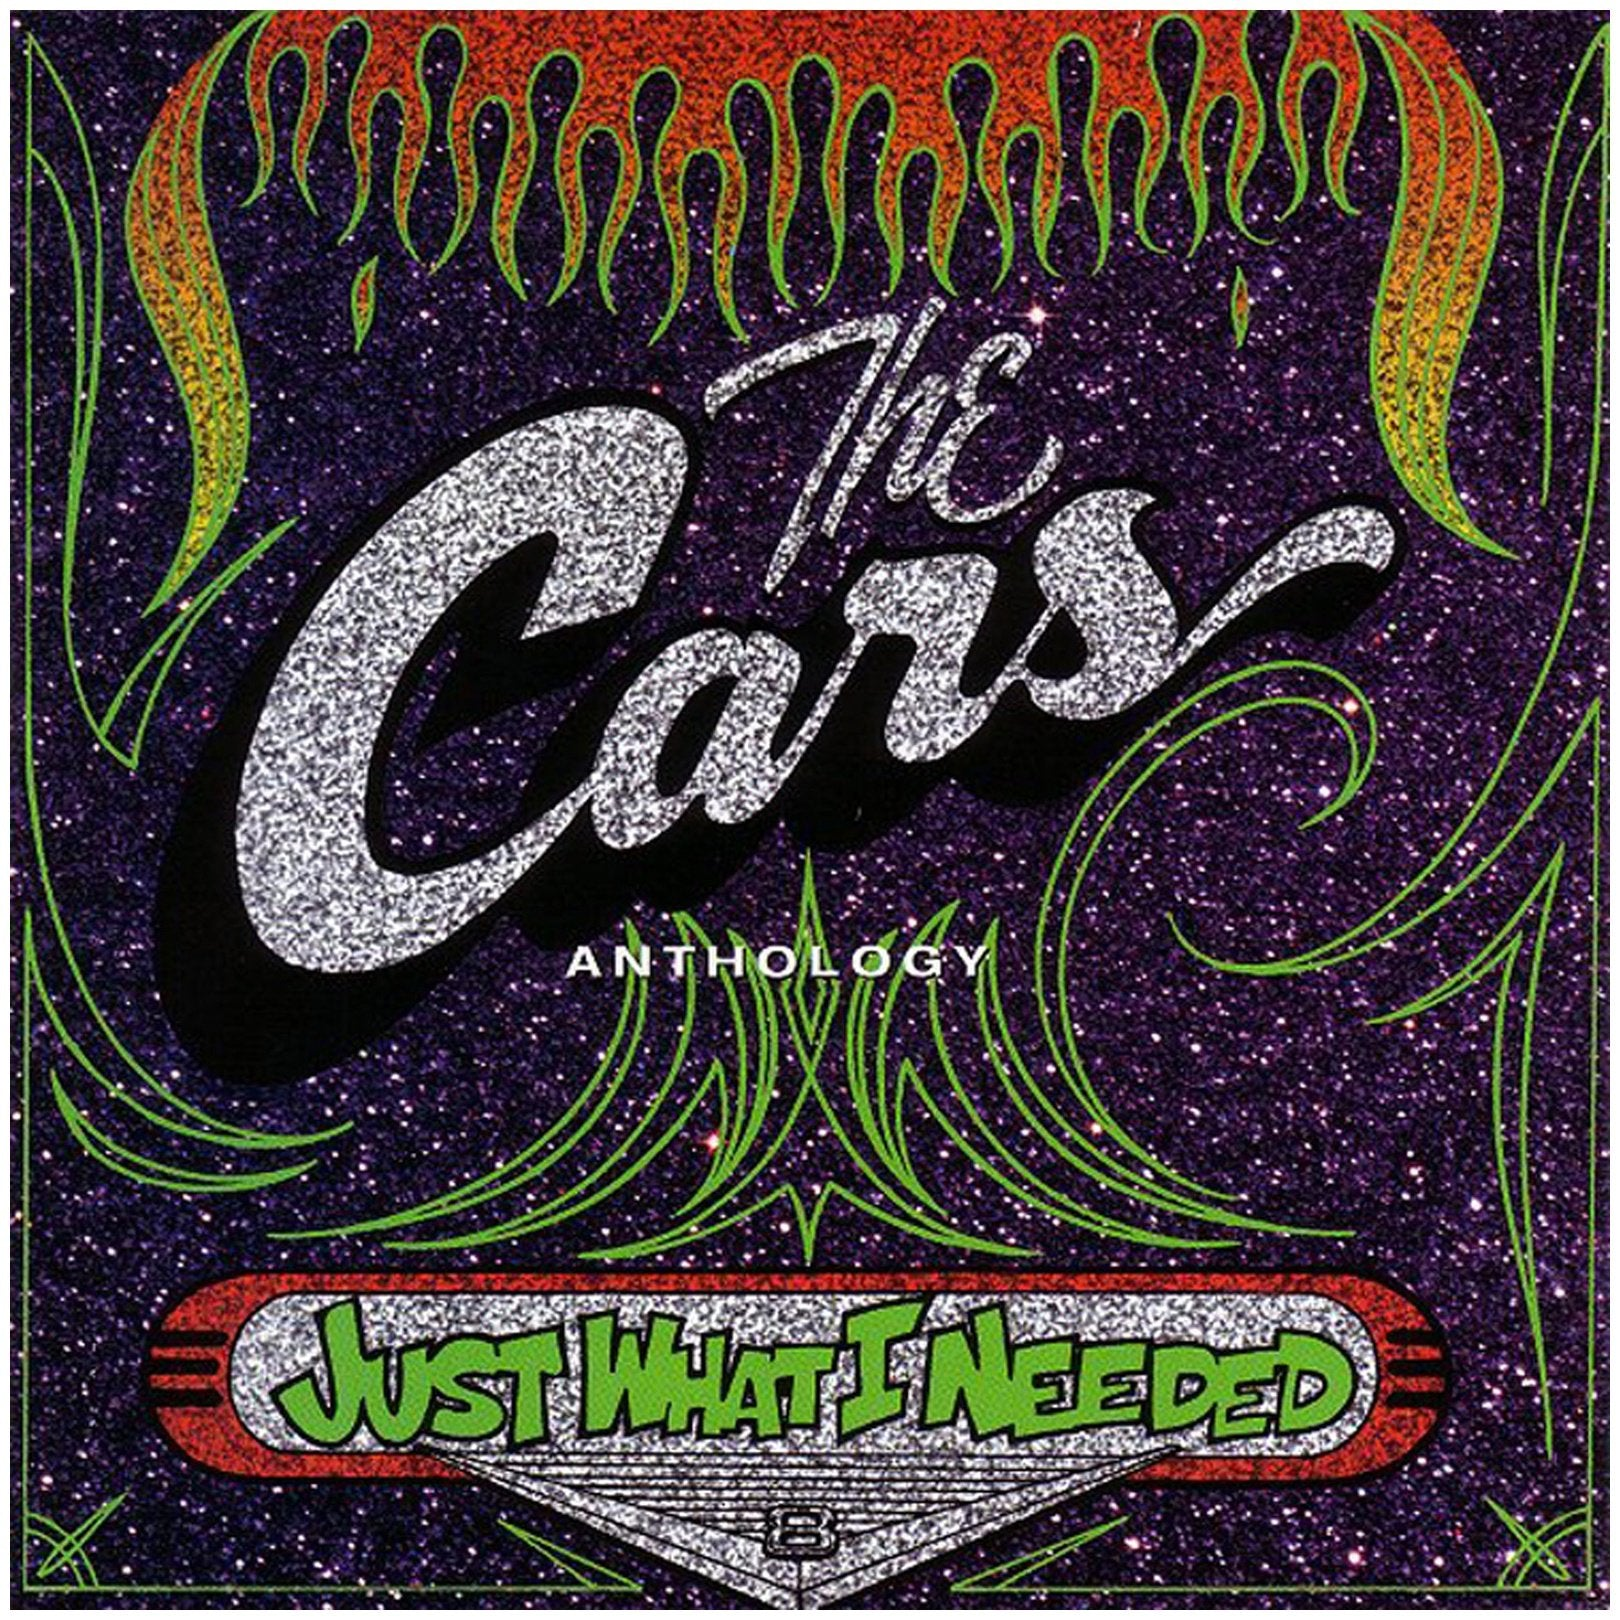 Cars - The Cars - Just What I Needed: The Cars Anthology - 2 Cd